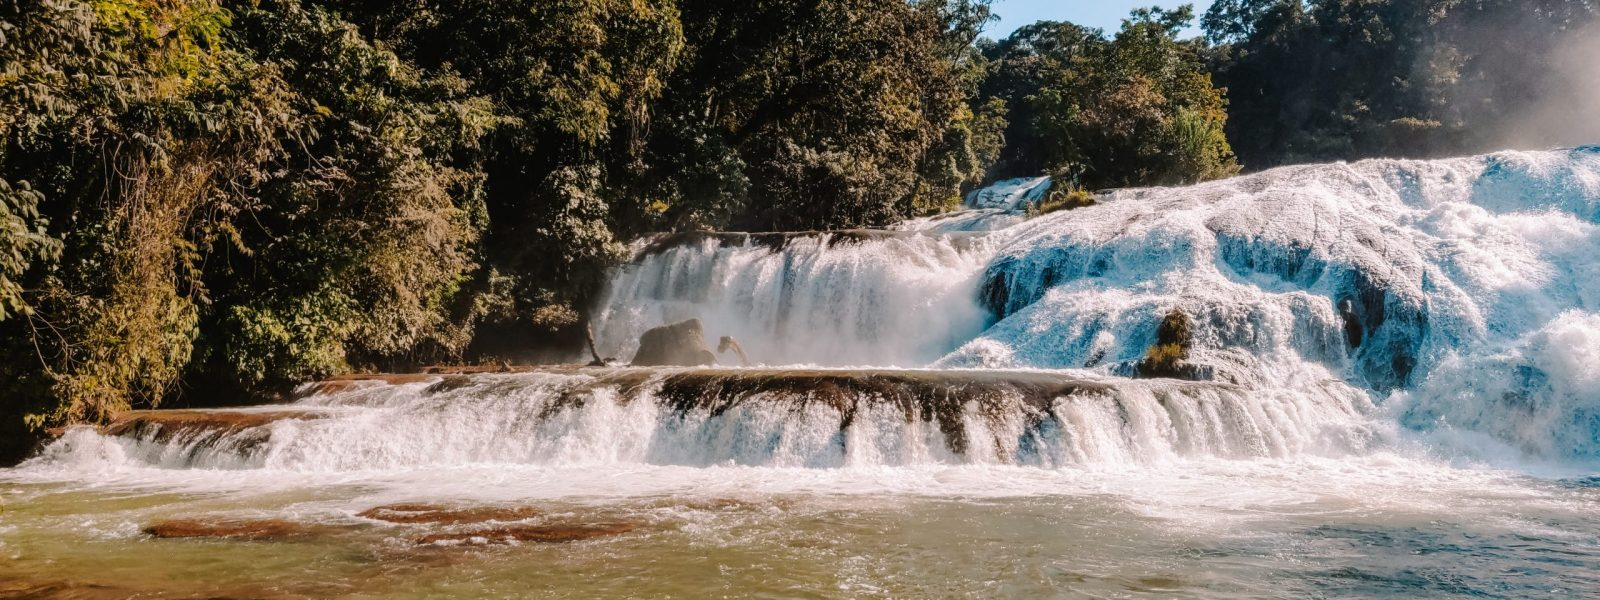 A guide to the Palenque waterfalls and Mayan ruins